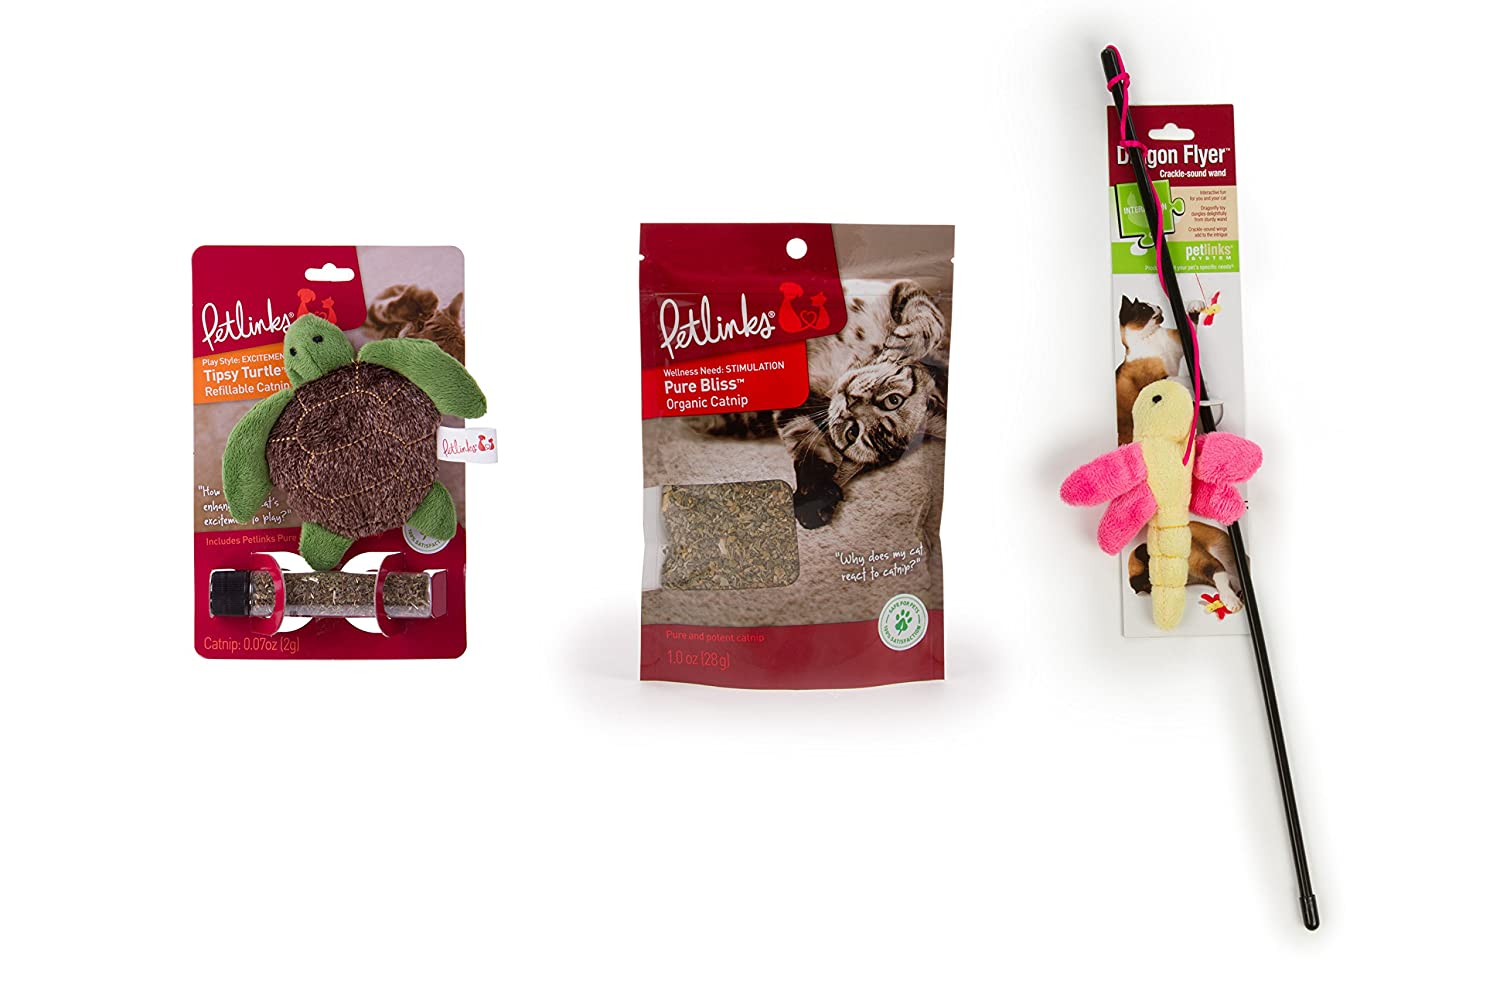 Petlinks 3 Count Refillable Catnip Toy Catnip & Wand Toy for Cats